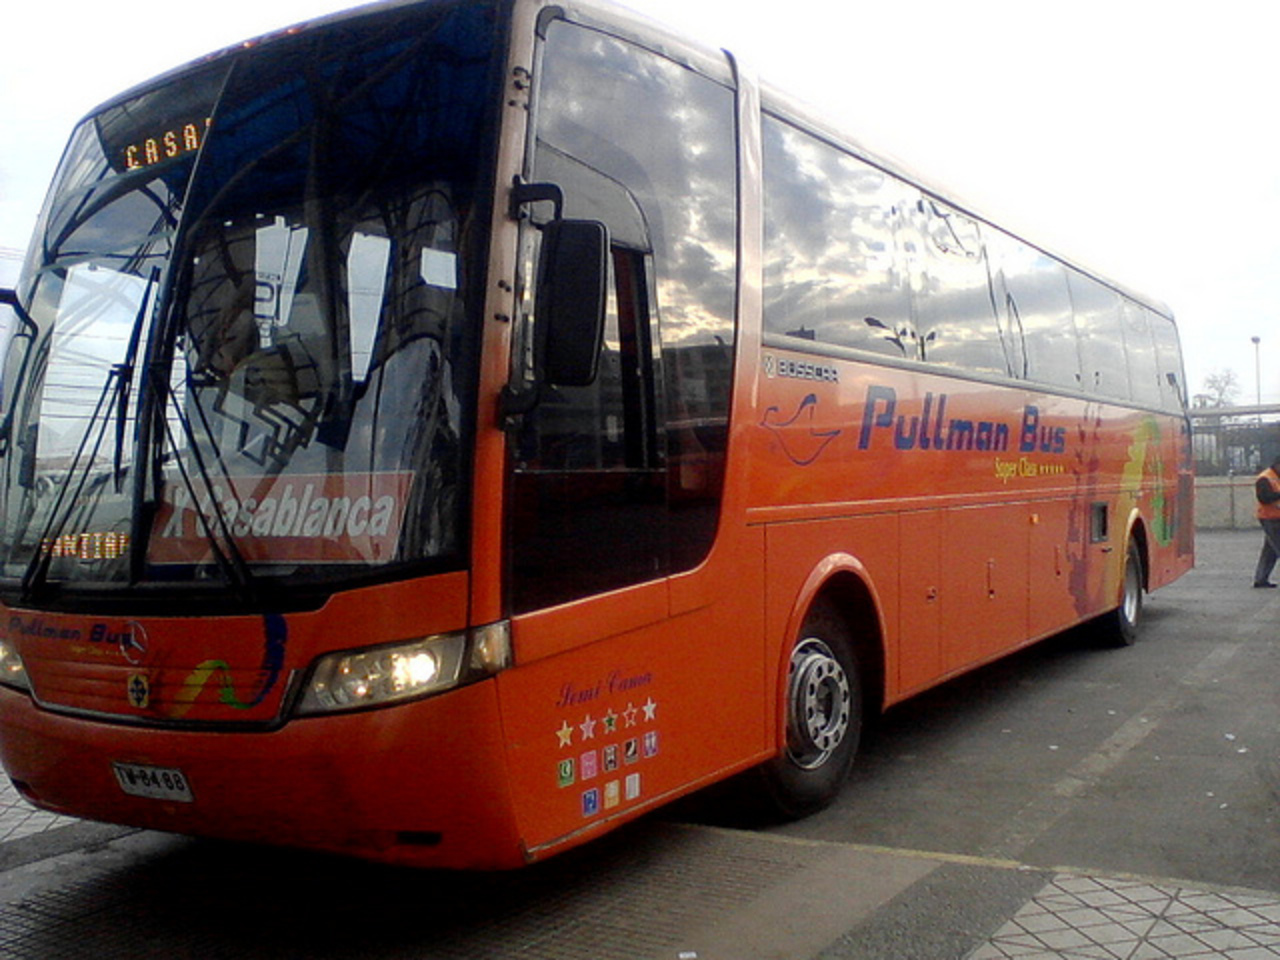 Busscar Vista Buss Lo - Pullman Bus Casablanca | Flickr - Photo ...